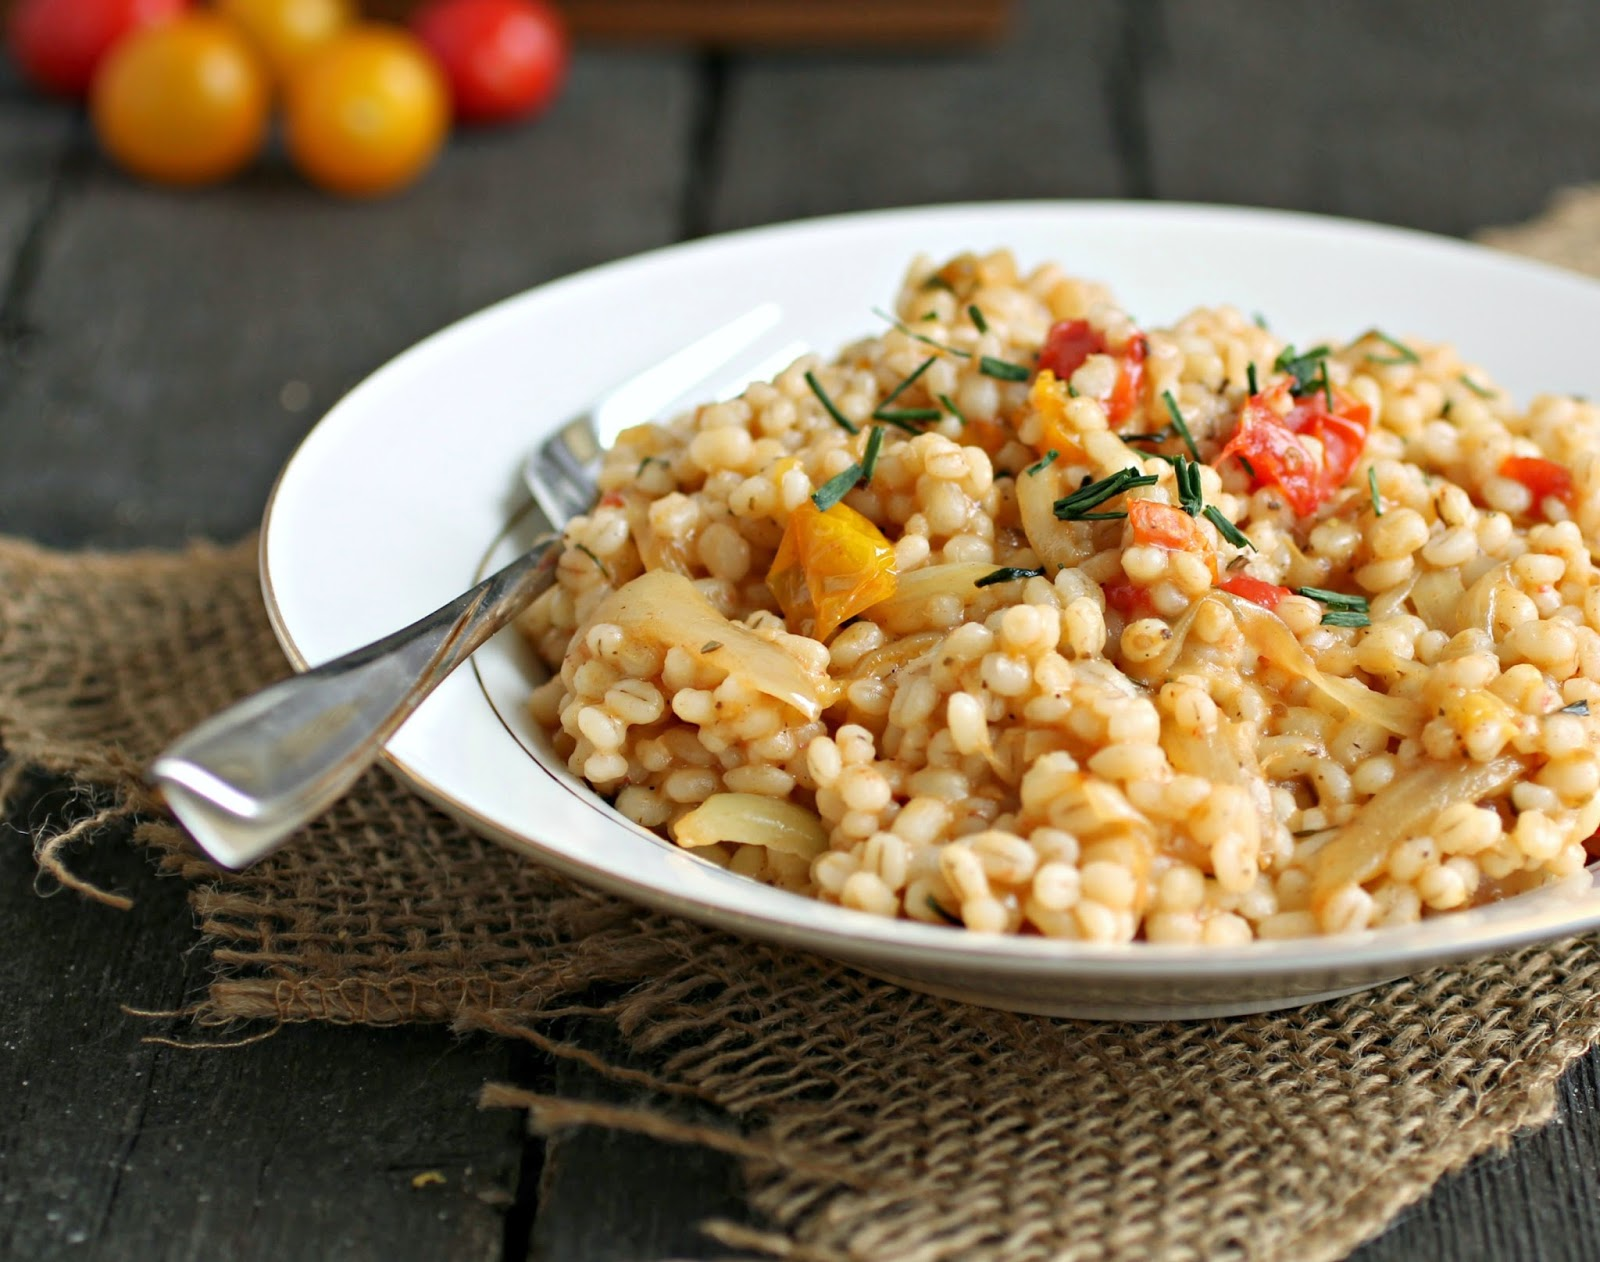 Recipe for fragrant, nutty barley as a wonderful side dish paired with sauteed onion and tomatoes.